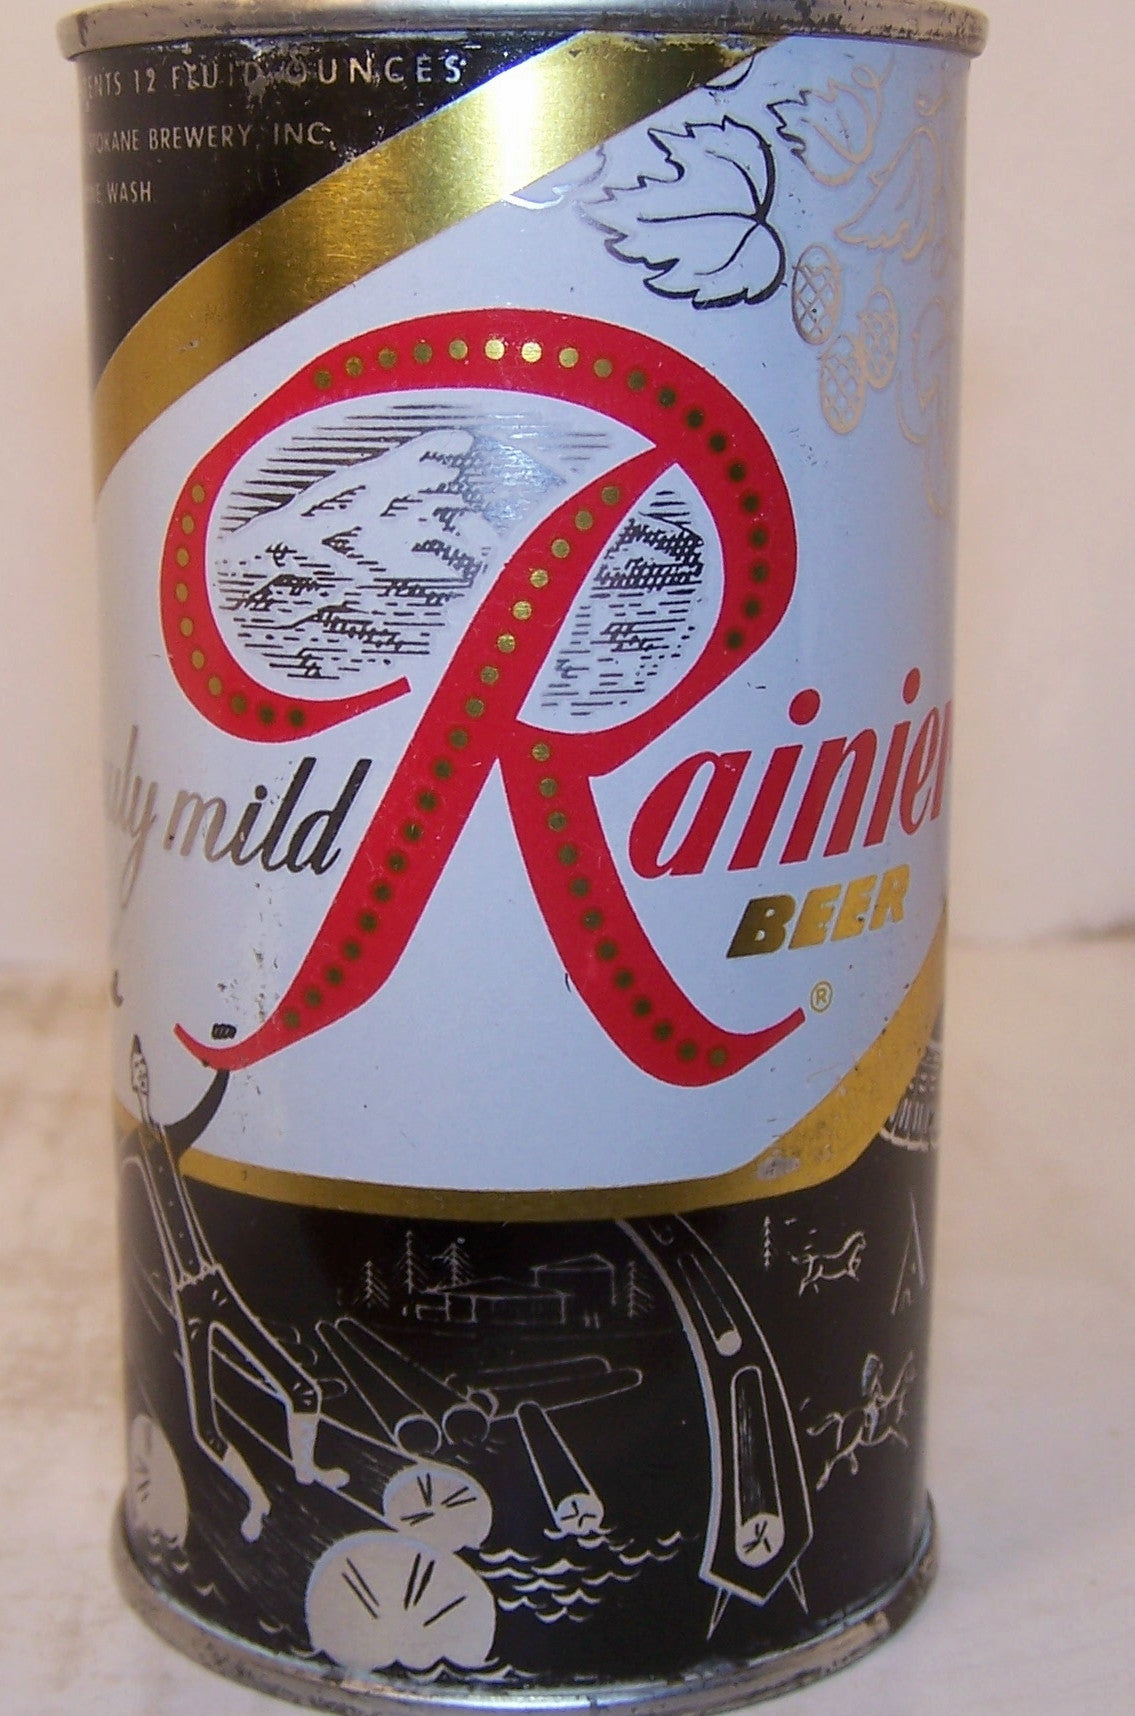 Rainier beer (Paul Bunyan) usbc like 118-30, Grade 1/1+ 7/11/15